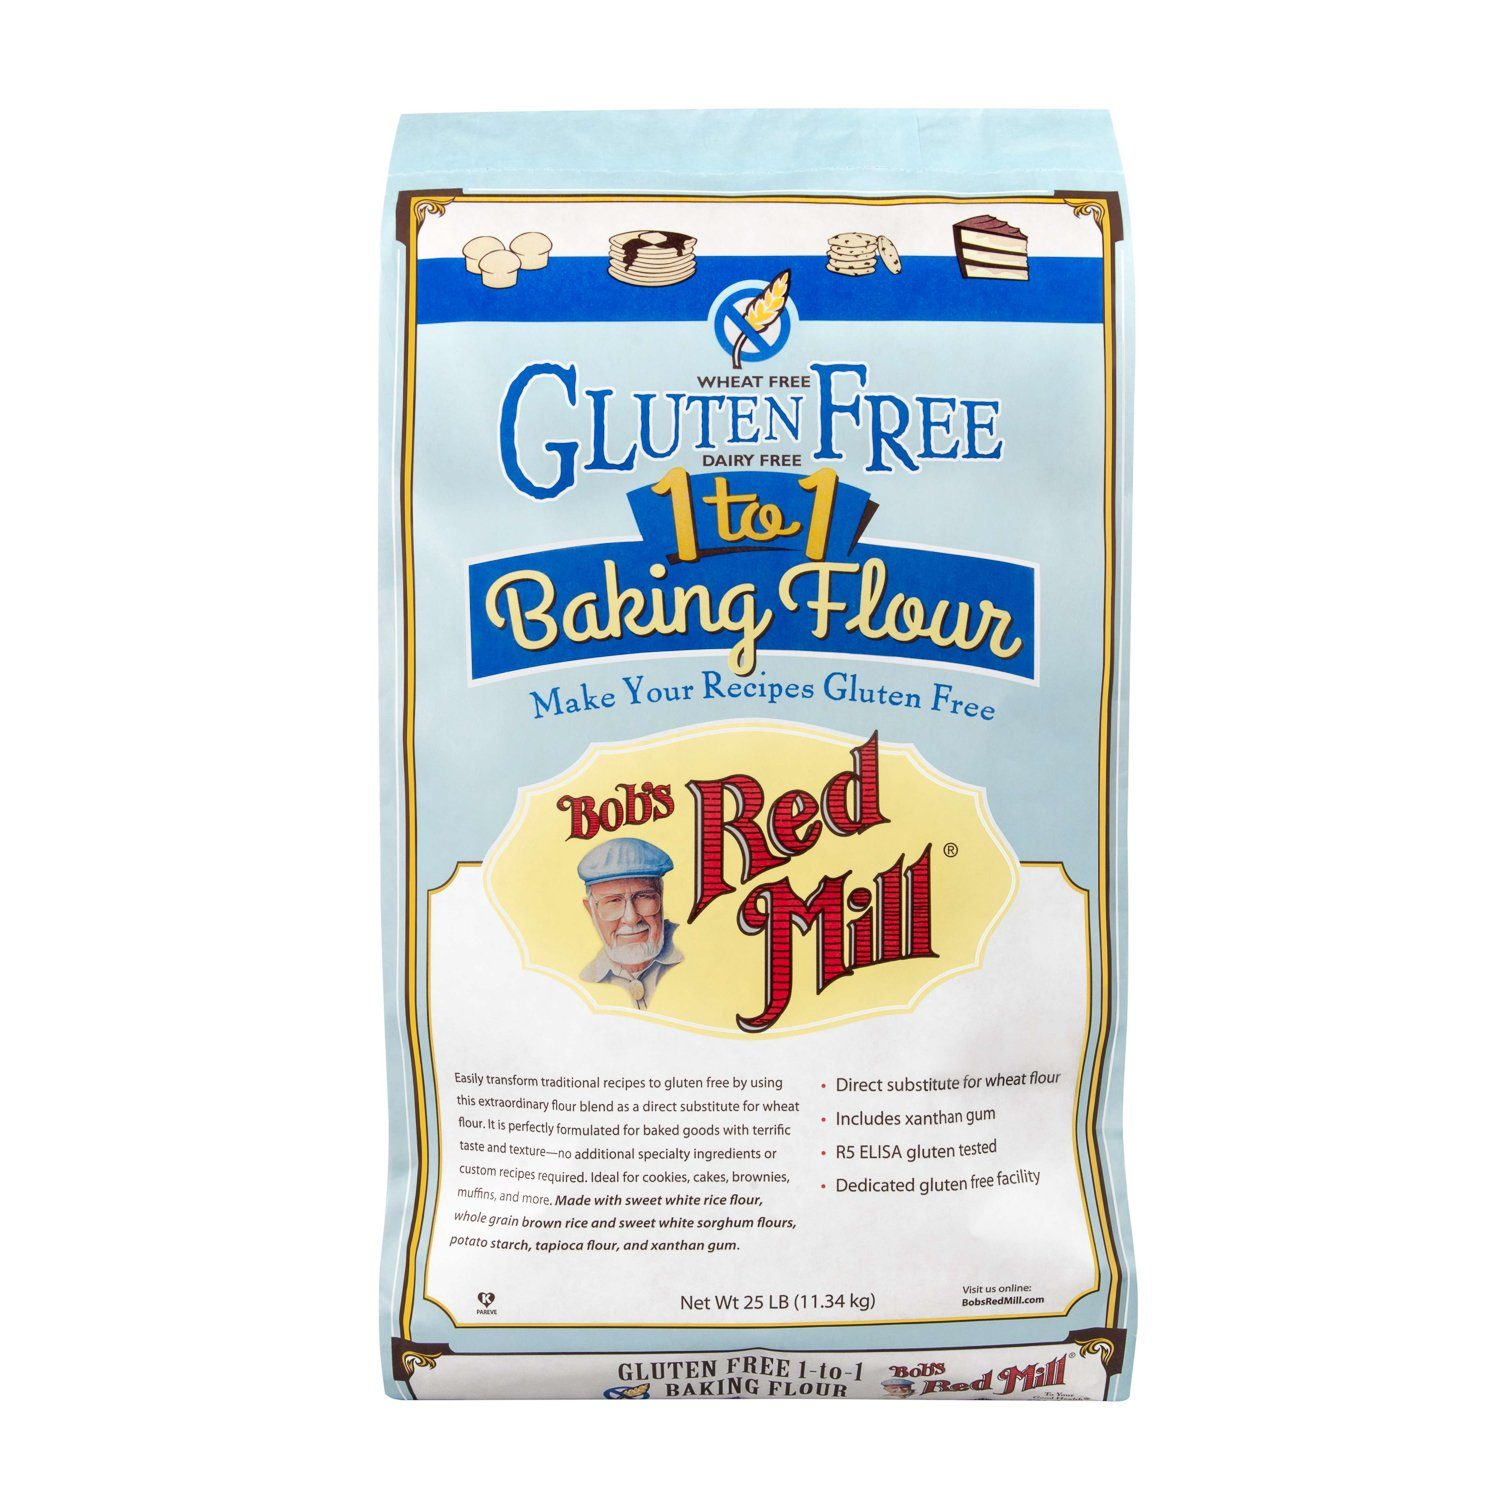 Bob's Red Mill Gluten Free 1-to-1 Baking Flour Bob's Red Mill 25 Pound